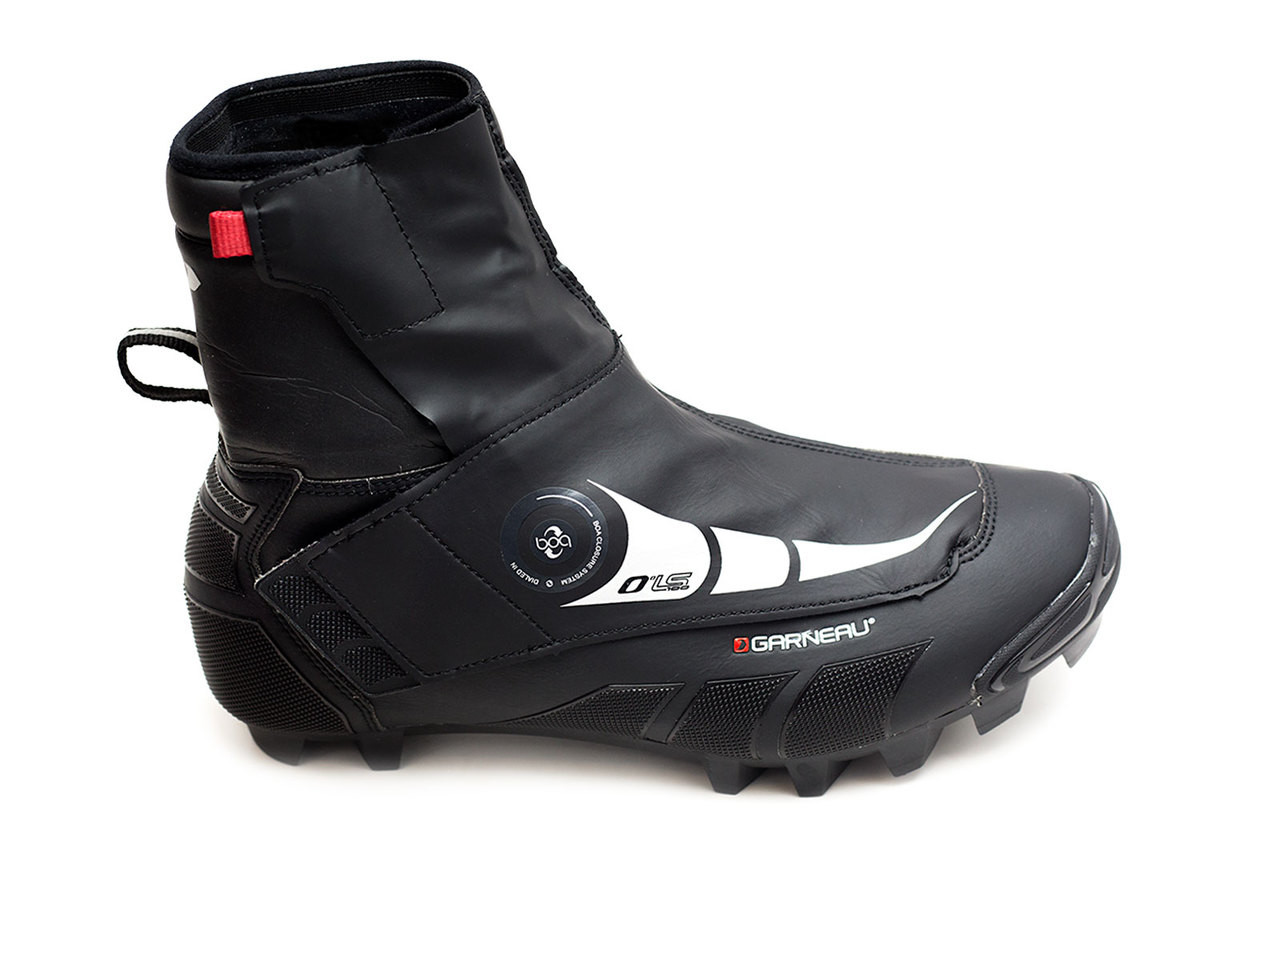 discount sale good looking later Louis Garneau 0 Degree LS-100 Winter Mountain Bike Shoes ...